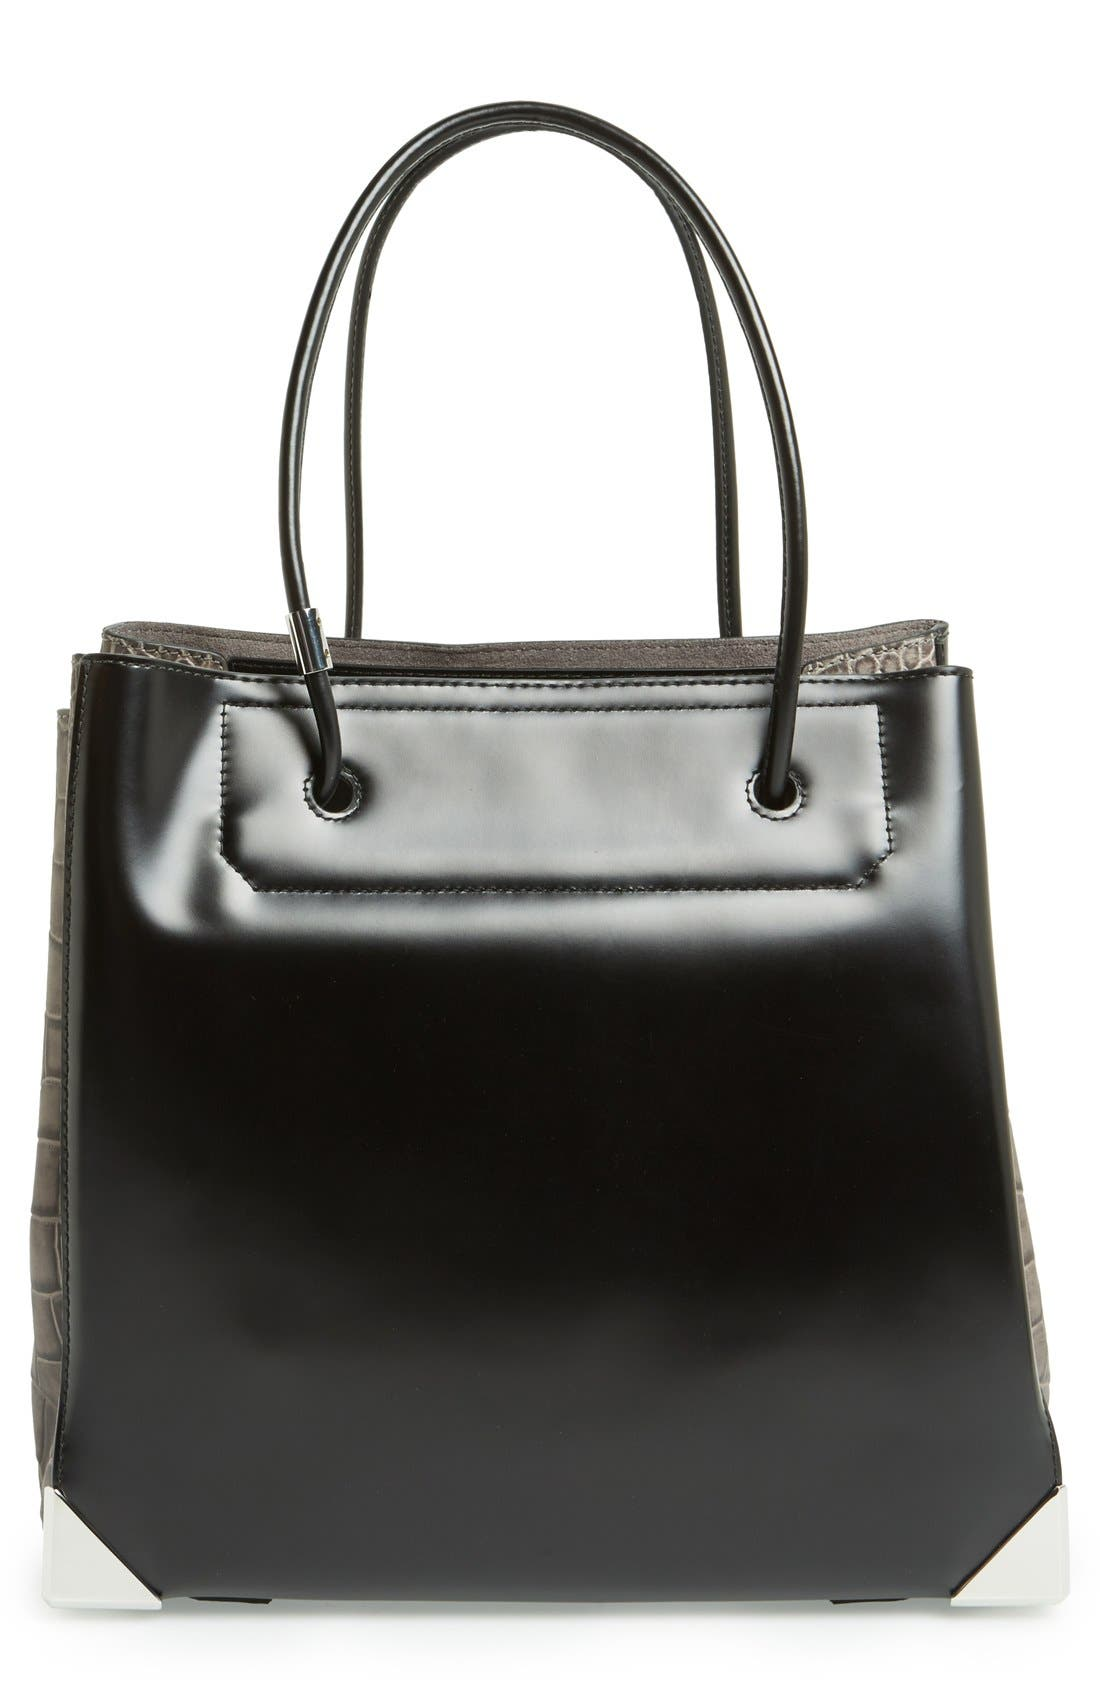 Main Image - Alexander Wang 'Large Prisma' Croc Embossed Leather Tote